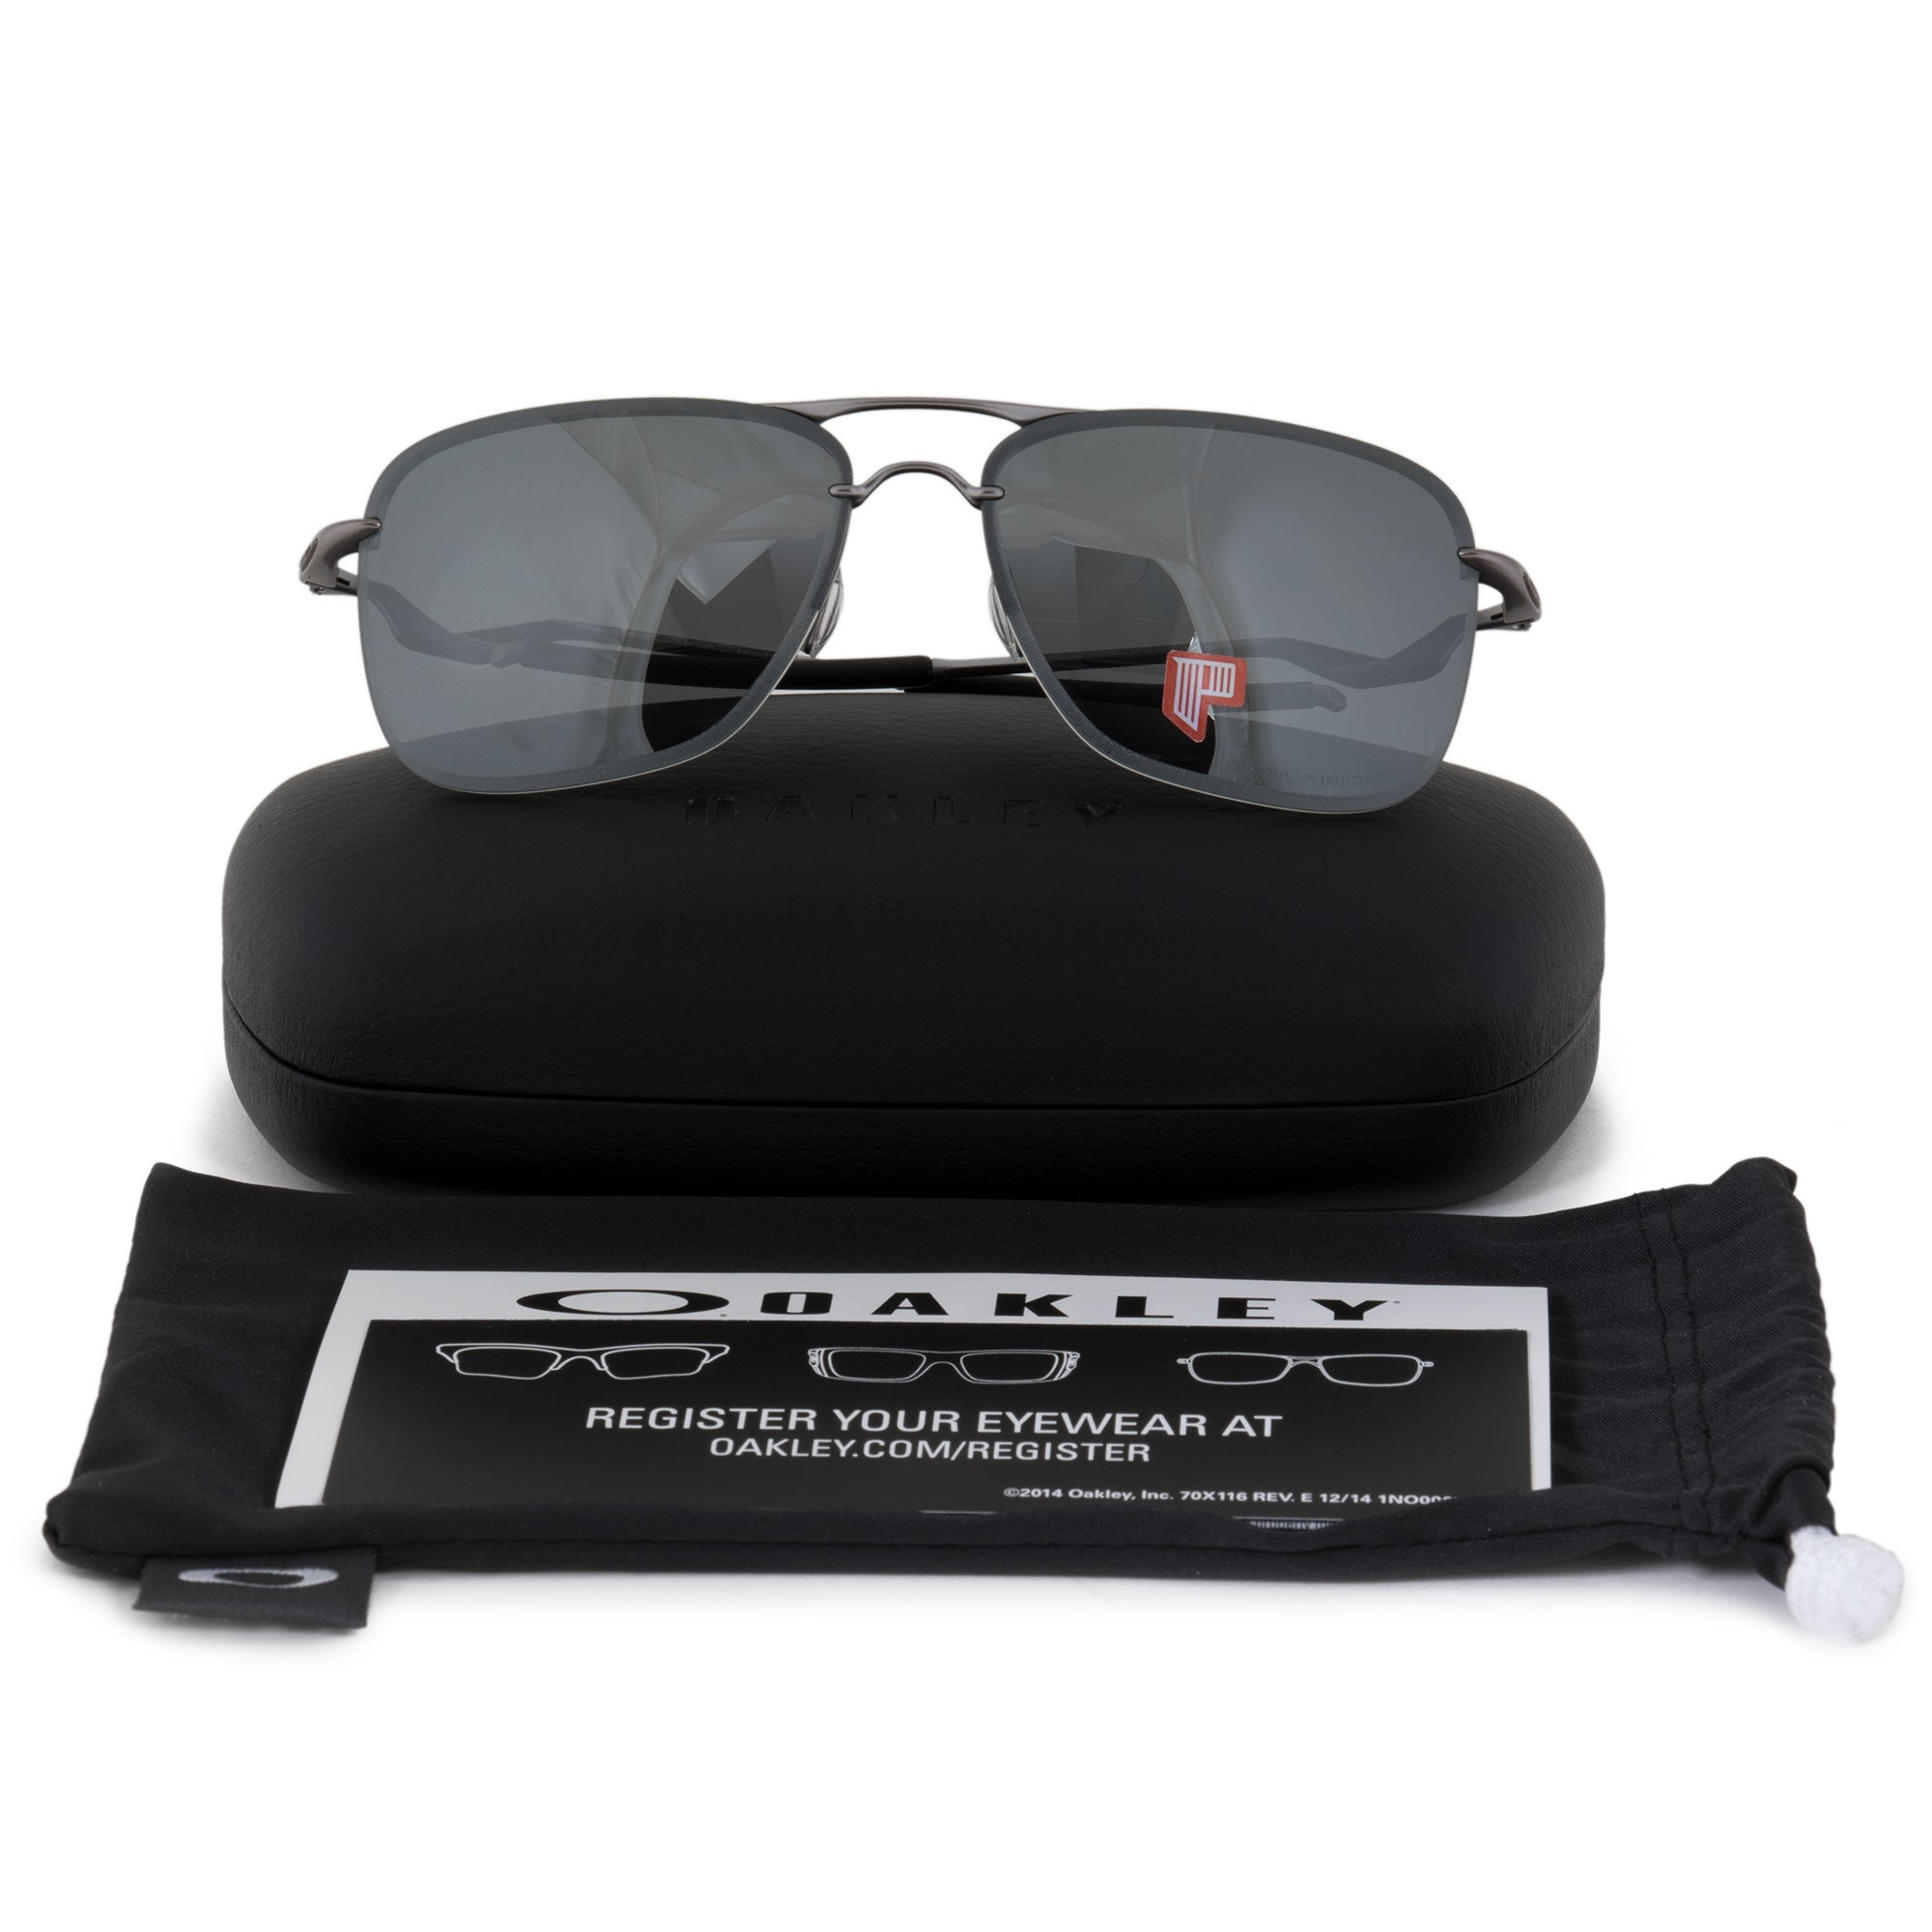 01accbe167 Shop Oakley Tailhook Square Sunglasses 0OO4087 408706 60 POL - Free  Shipping Today - Overstock - 19622526